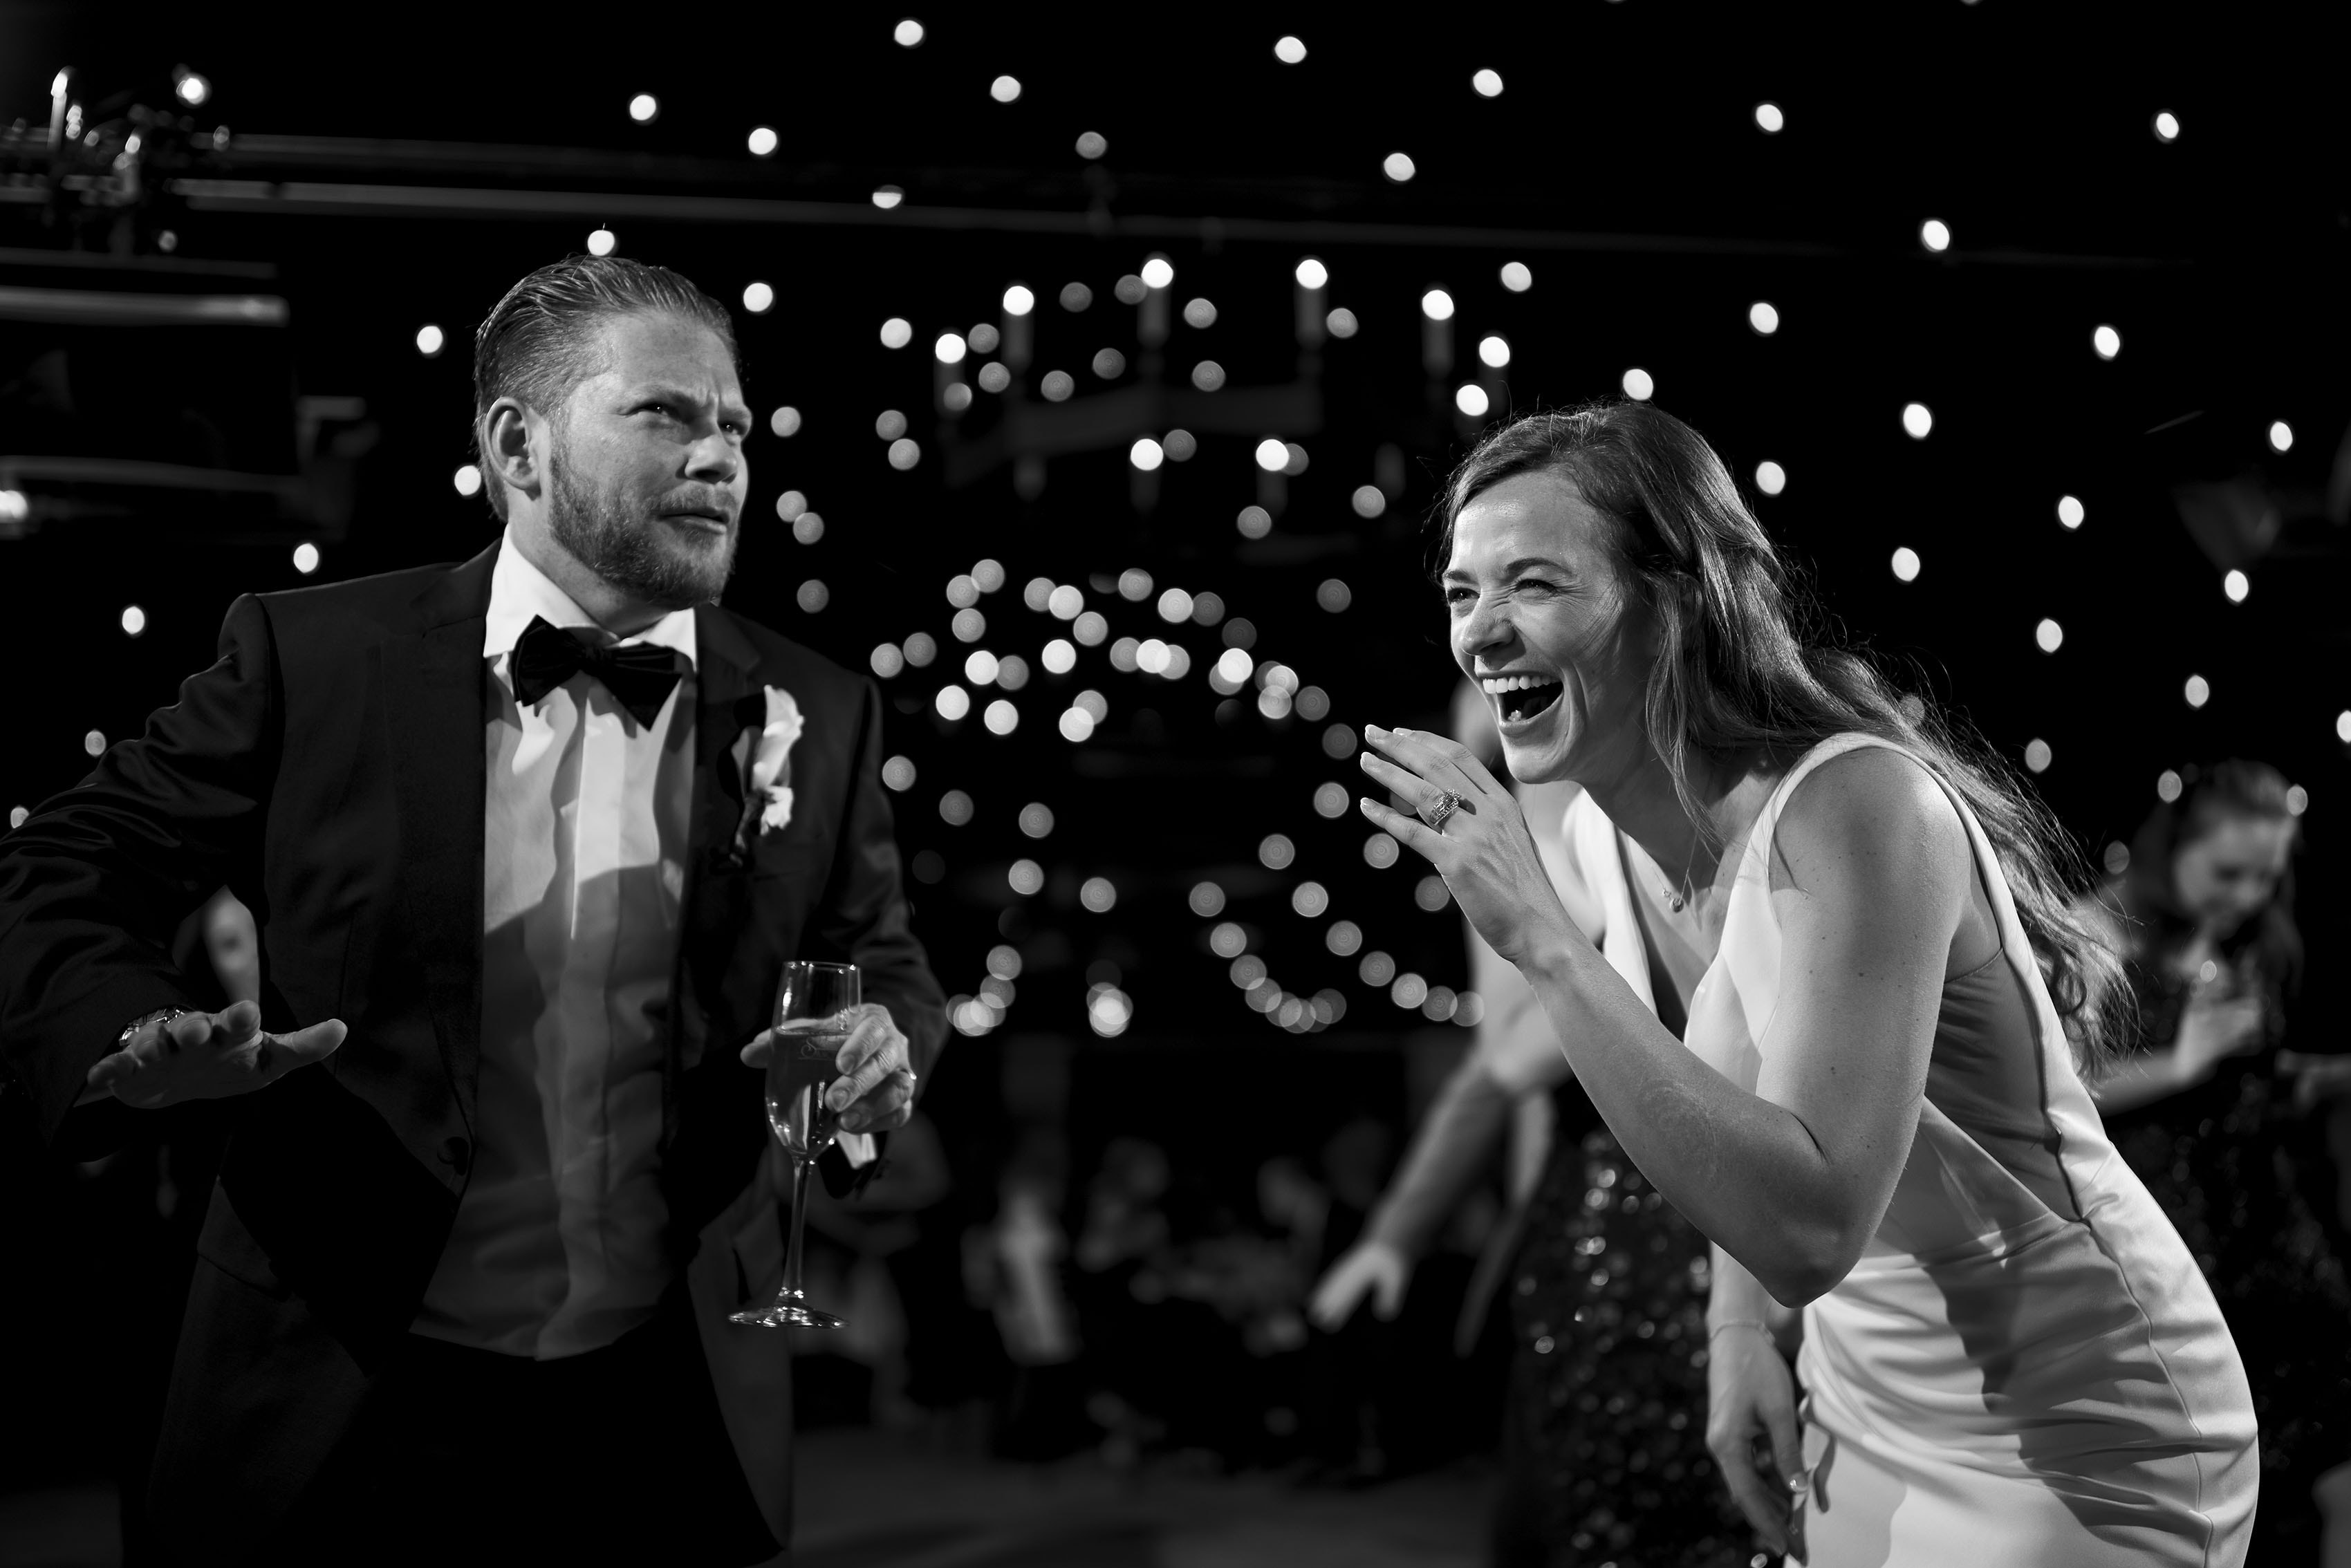 The bride and groom dance at their Sanctuary wedding reception